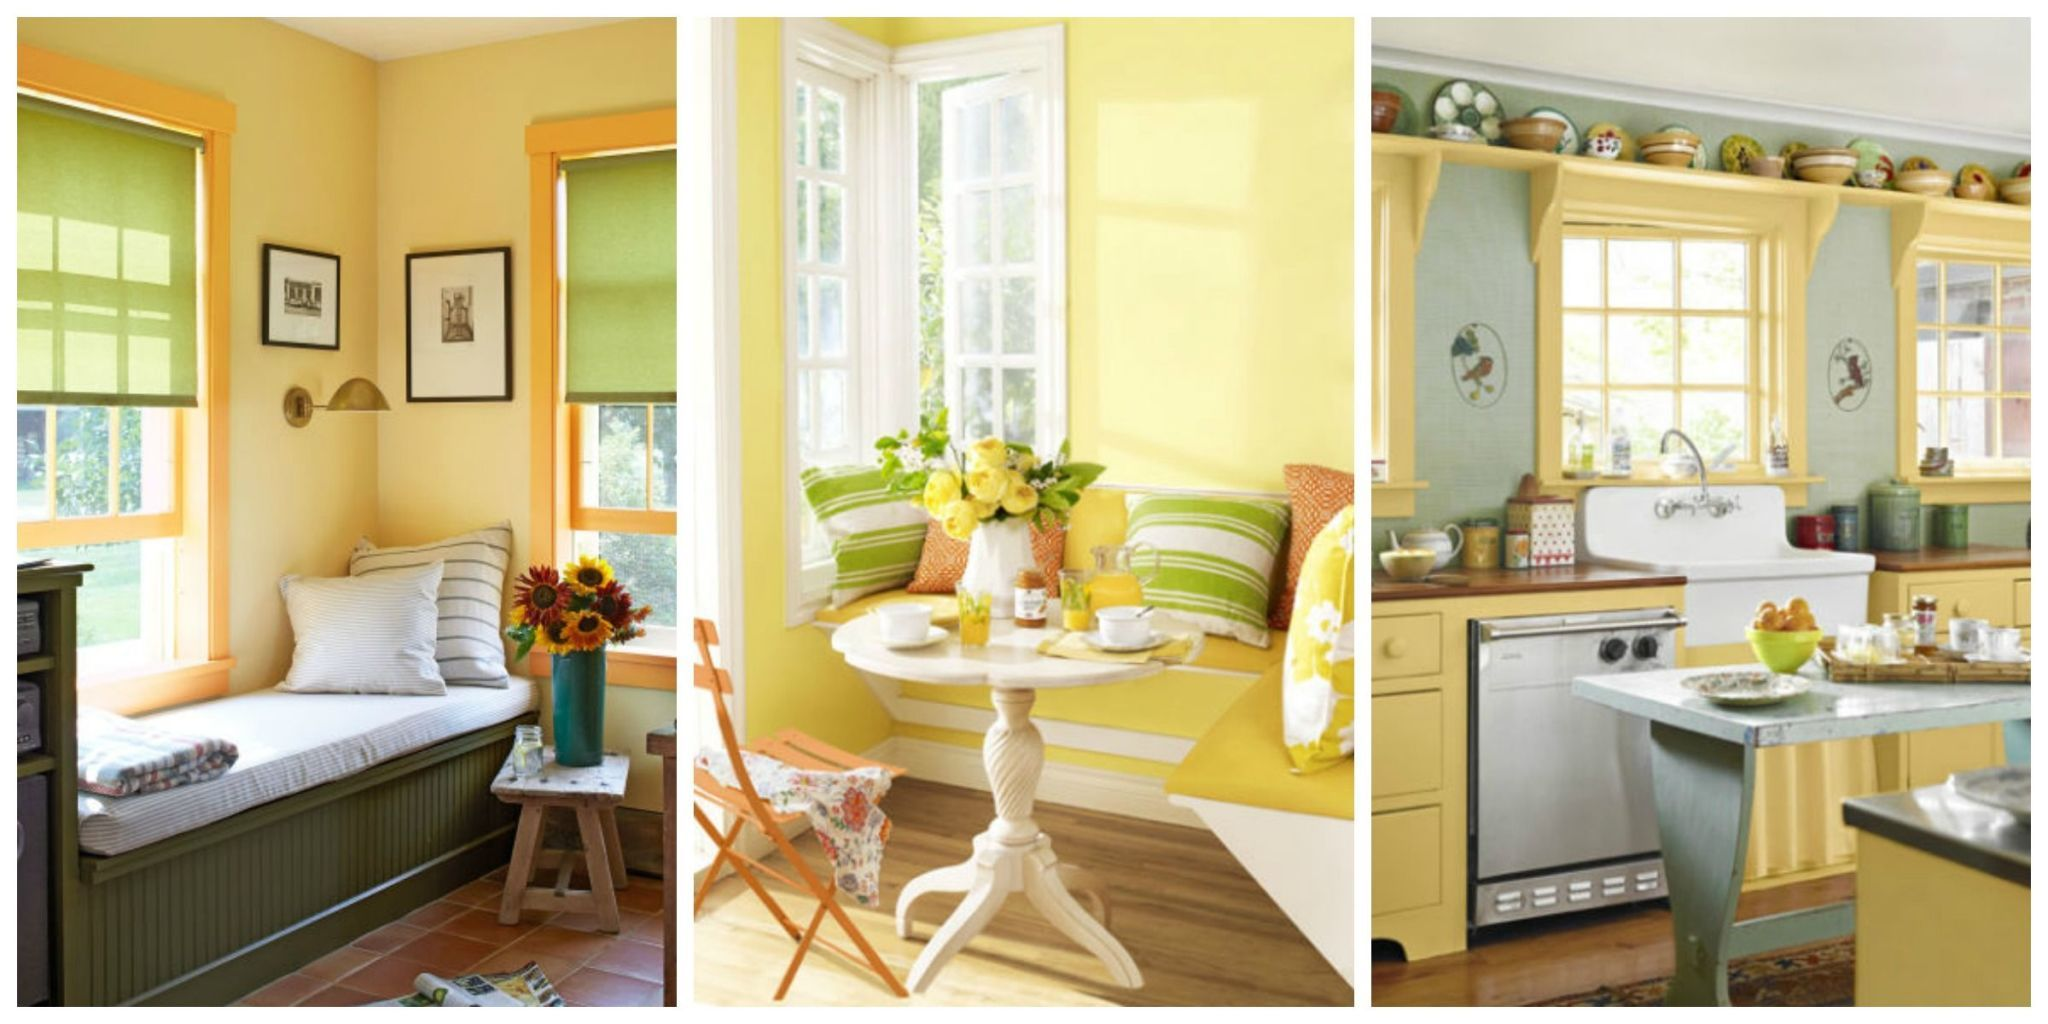 Charmant Whether A Swath Of Canary Or A Hint Of Golden, Bring The Sunshine Inside  With Yellow Wall Paint, Decor, And Accents.